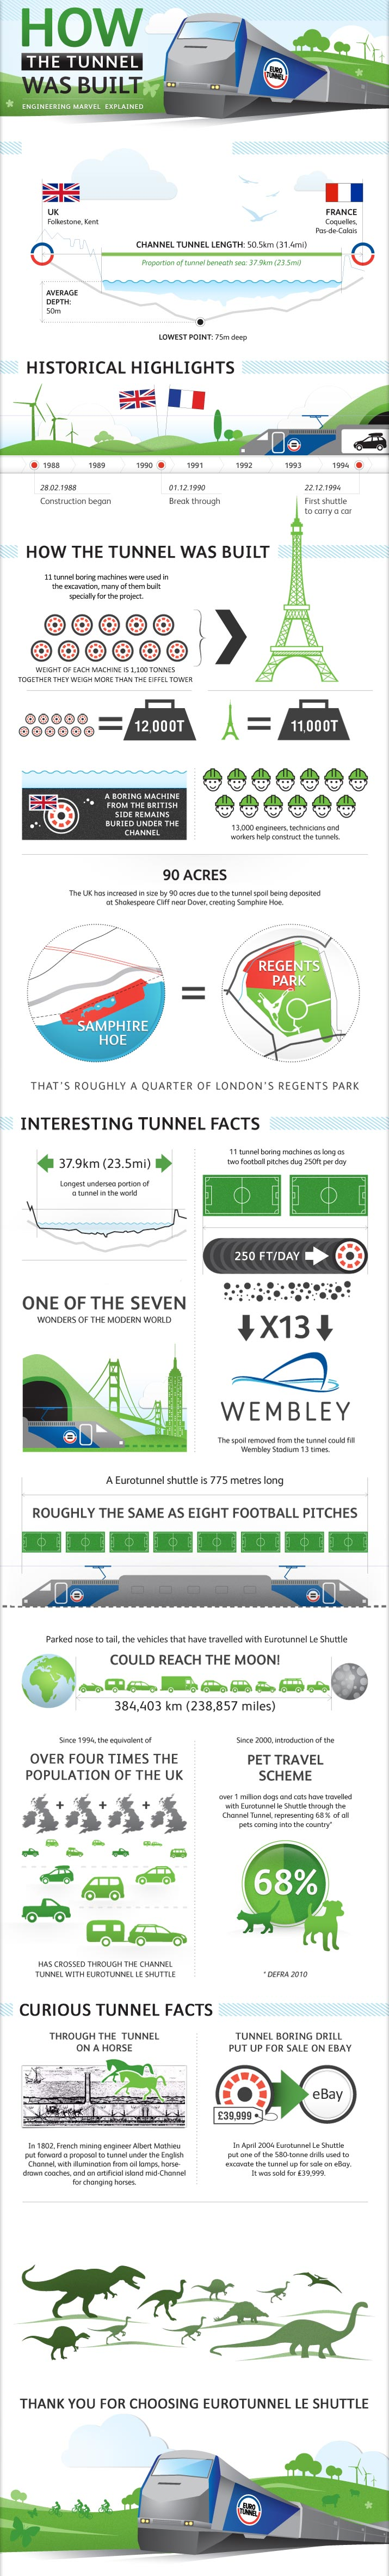 How the (English) Channel Tunnel Was Built